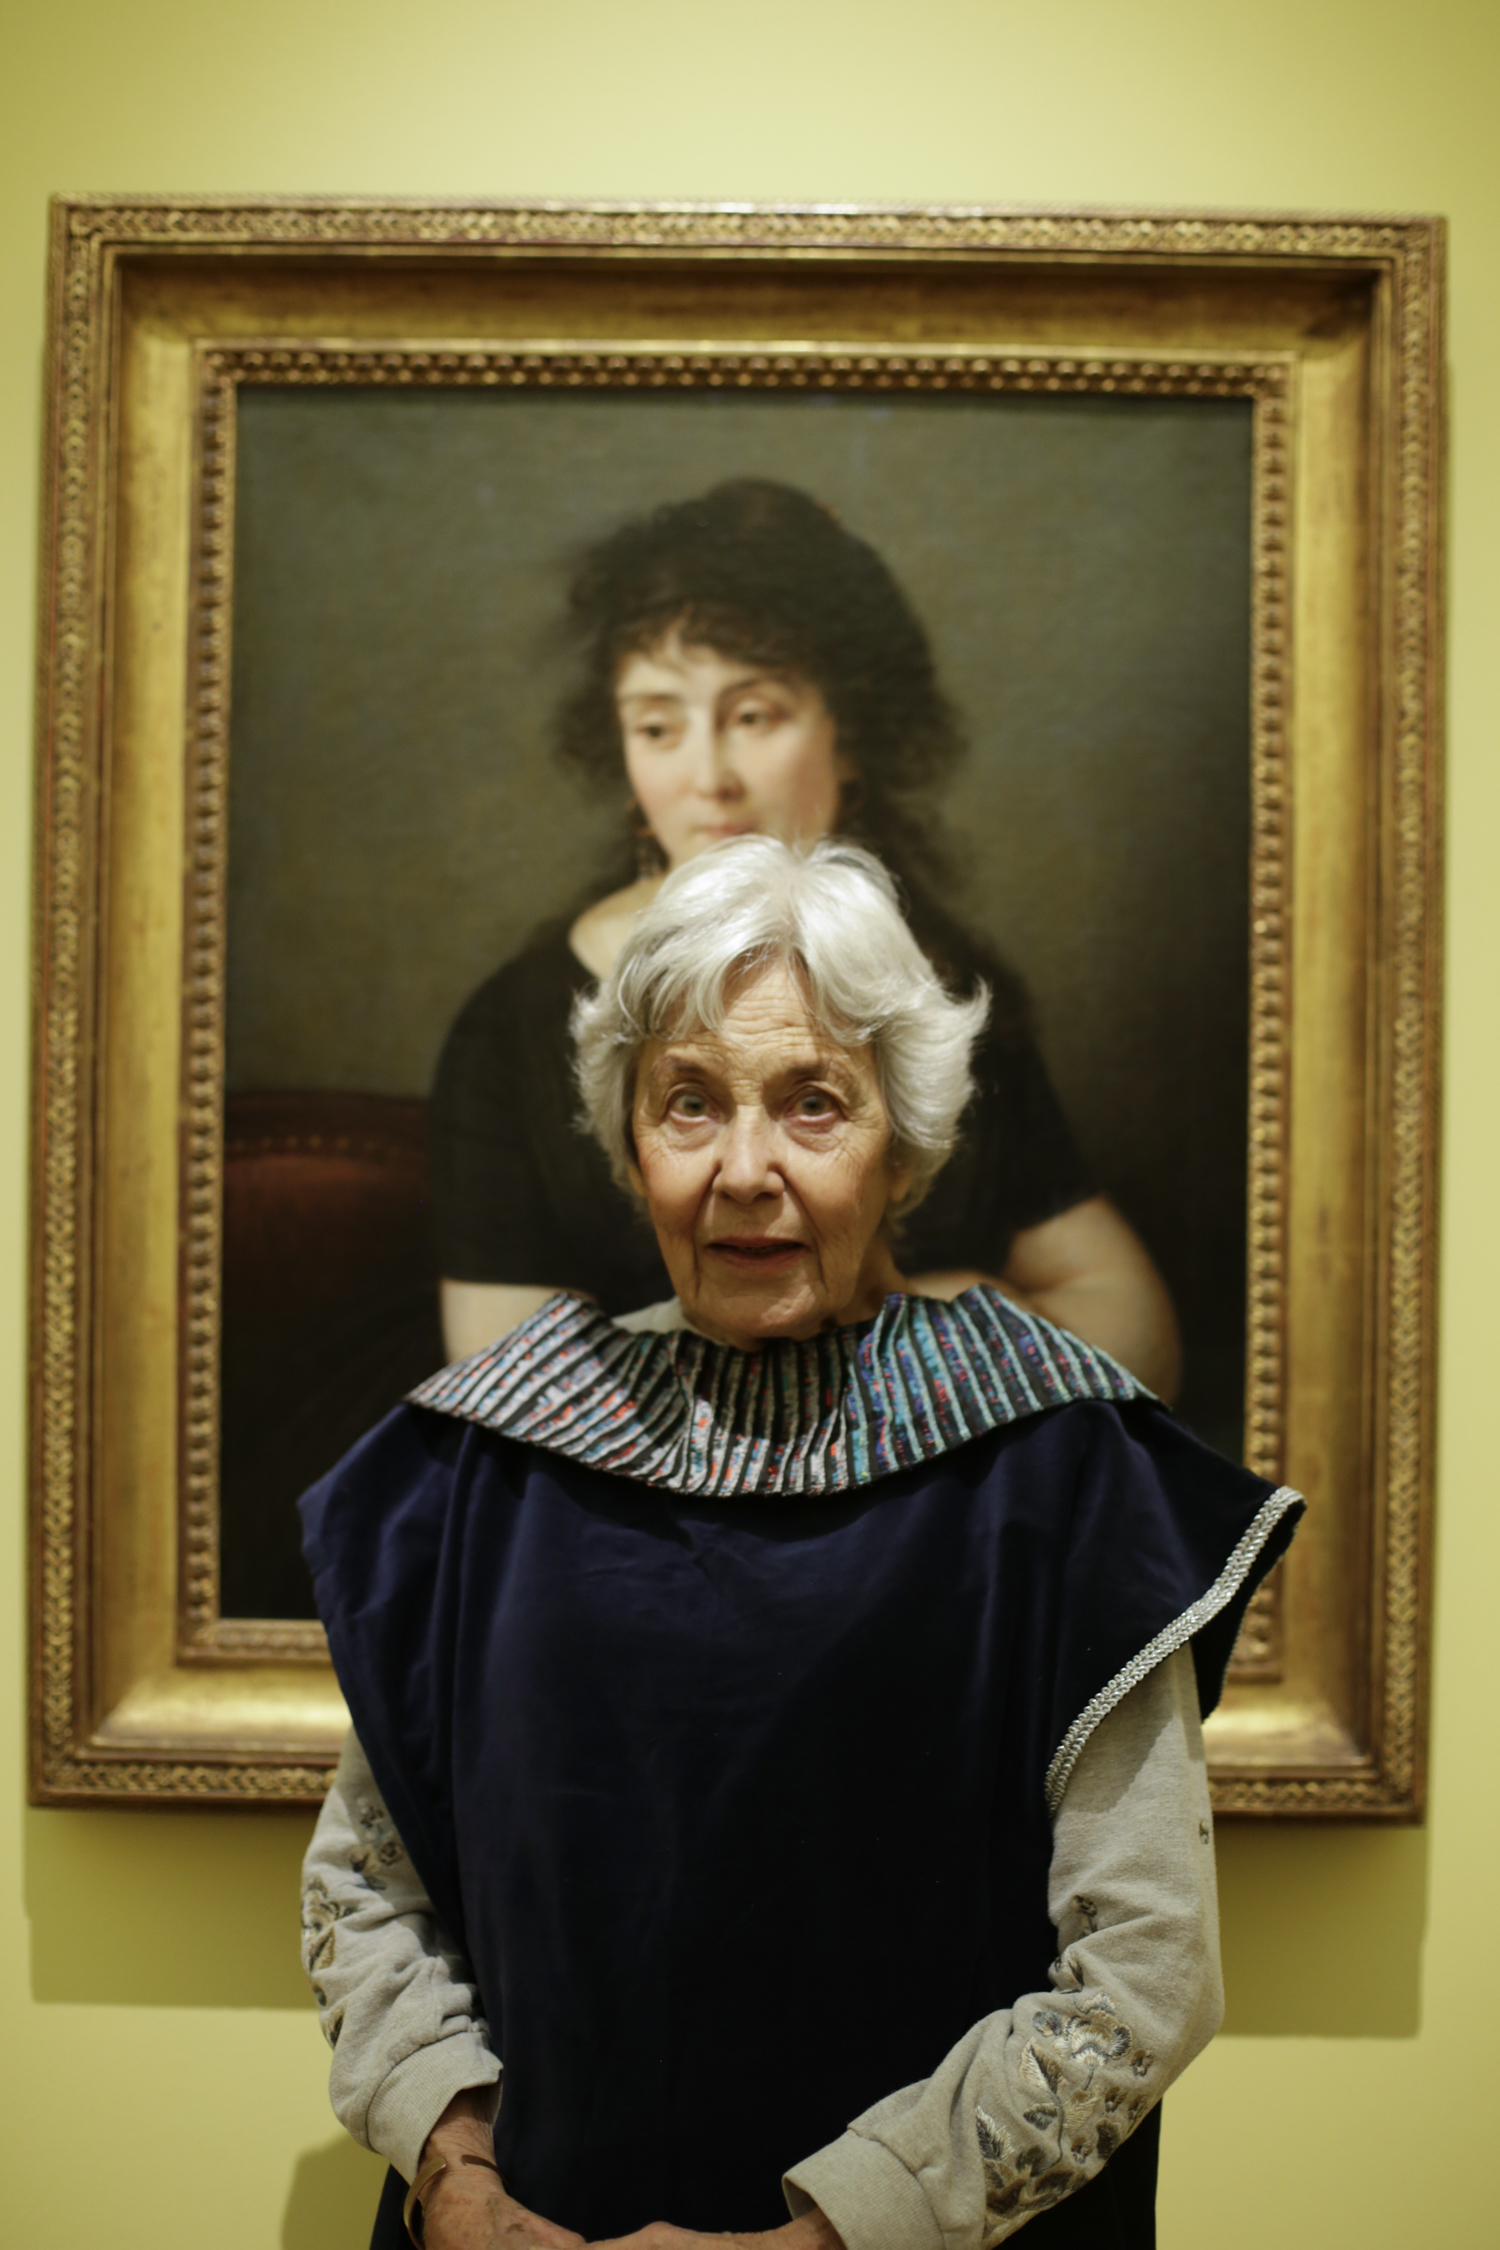 A portrait taken from a Dementia friendly creative cafe - an elderly woman sat in from of a painting in the enlightenment gallery